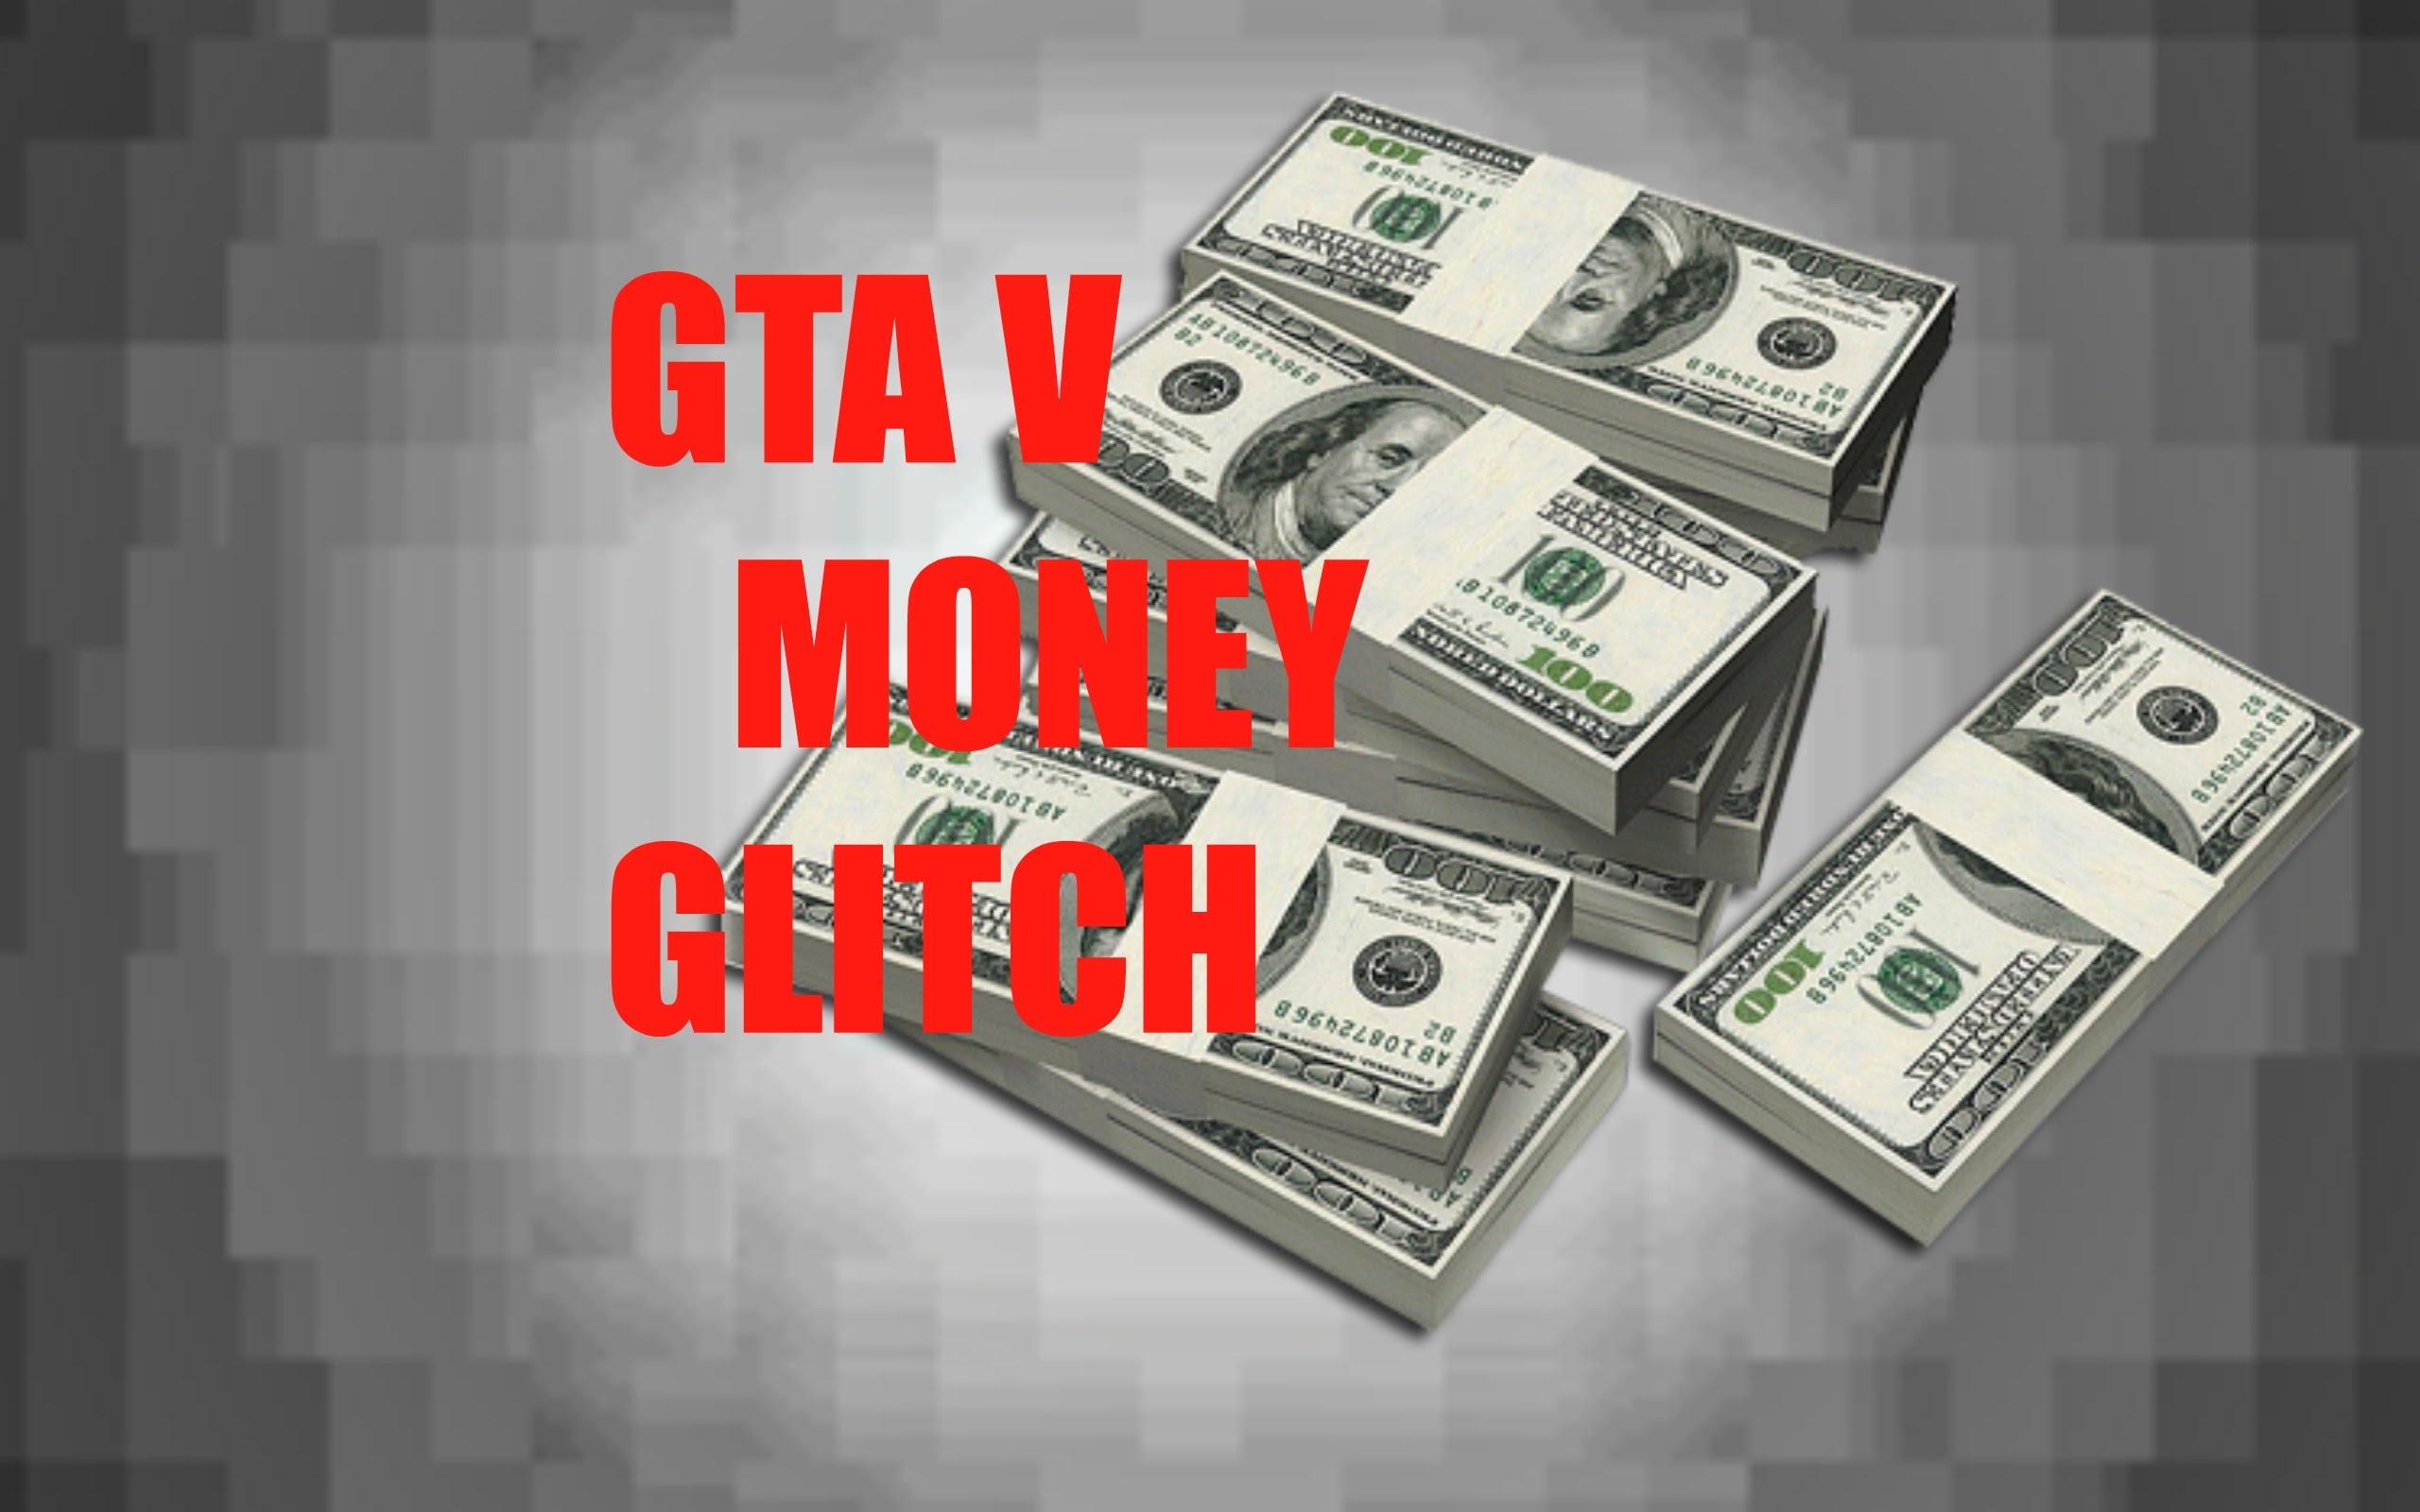 Gta v ps4 cheats money